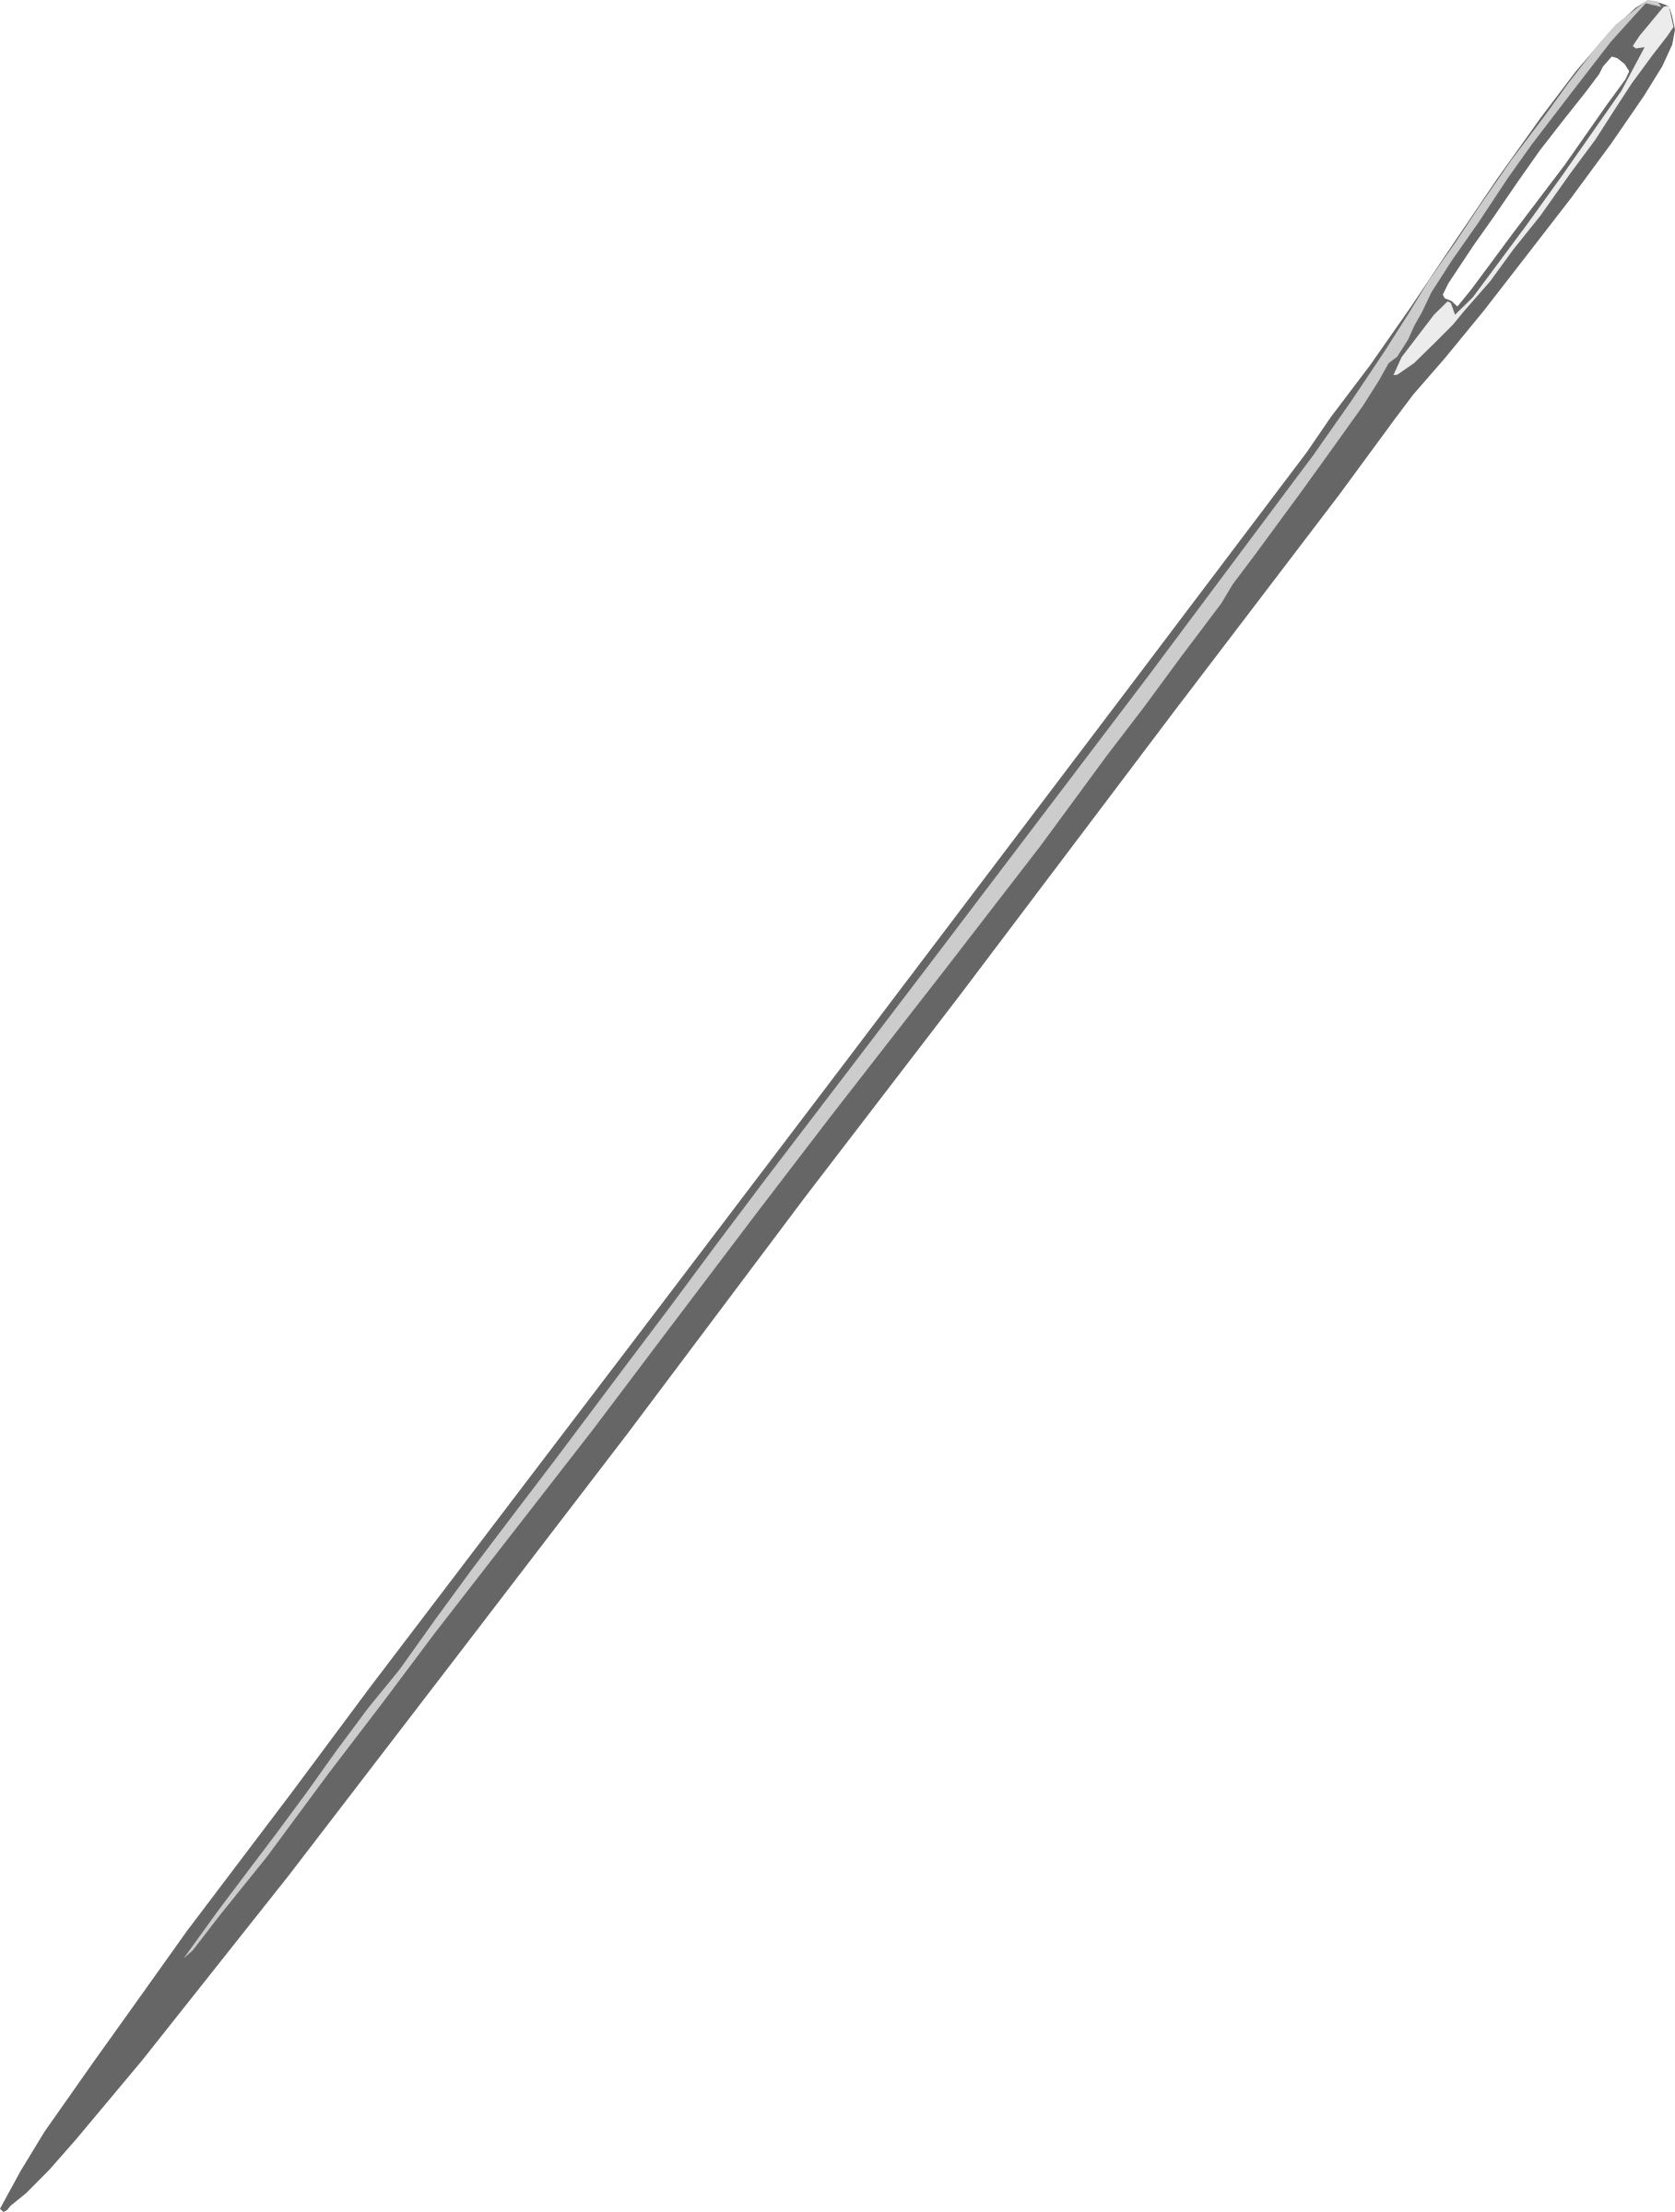 Sewing Needle Png - Needle, Transparent background PNG HD thumbnail